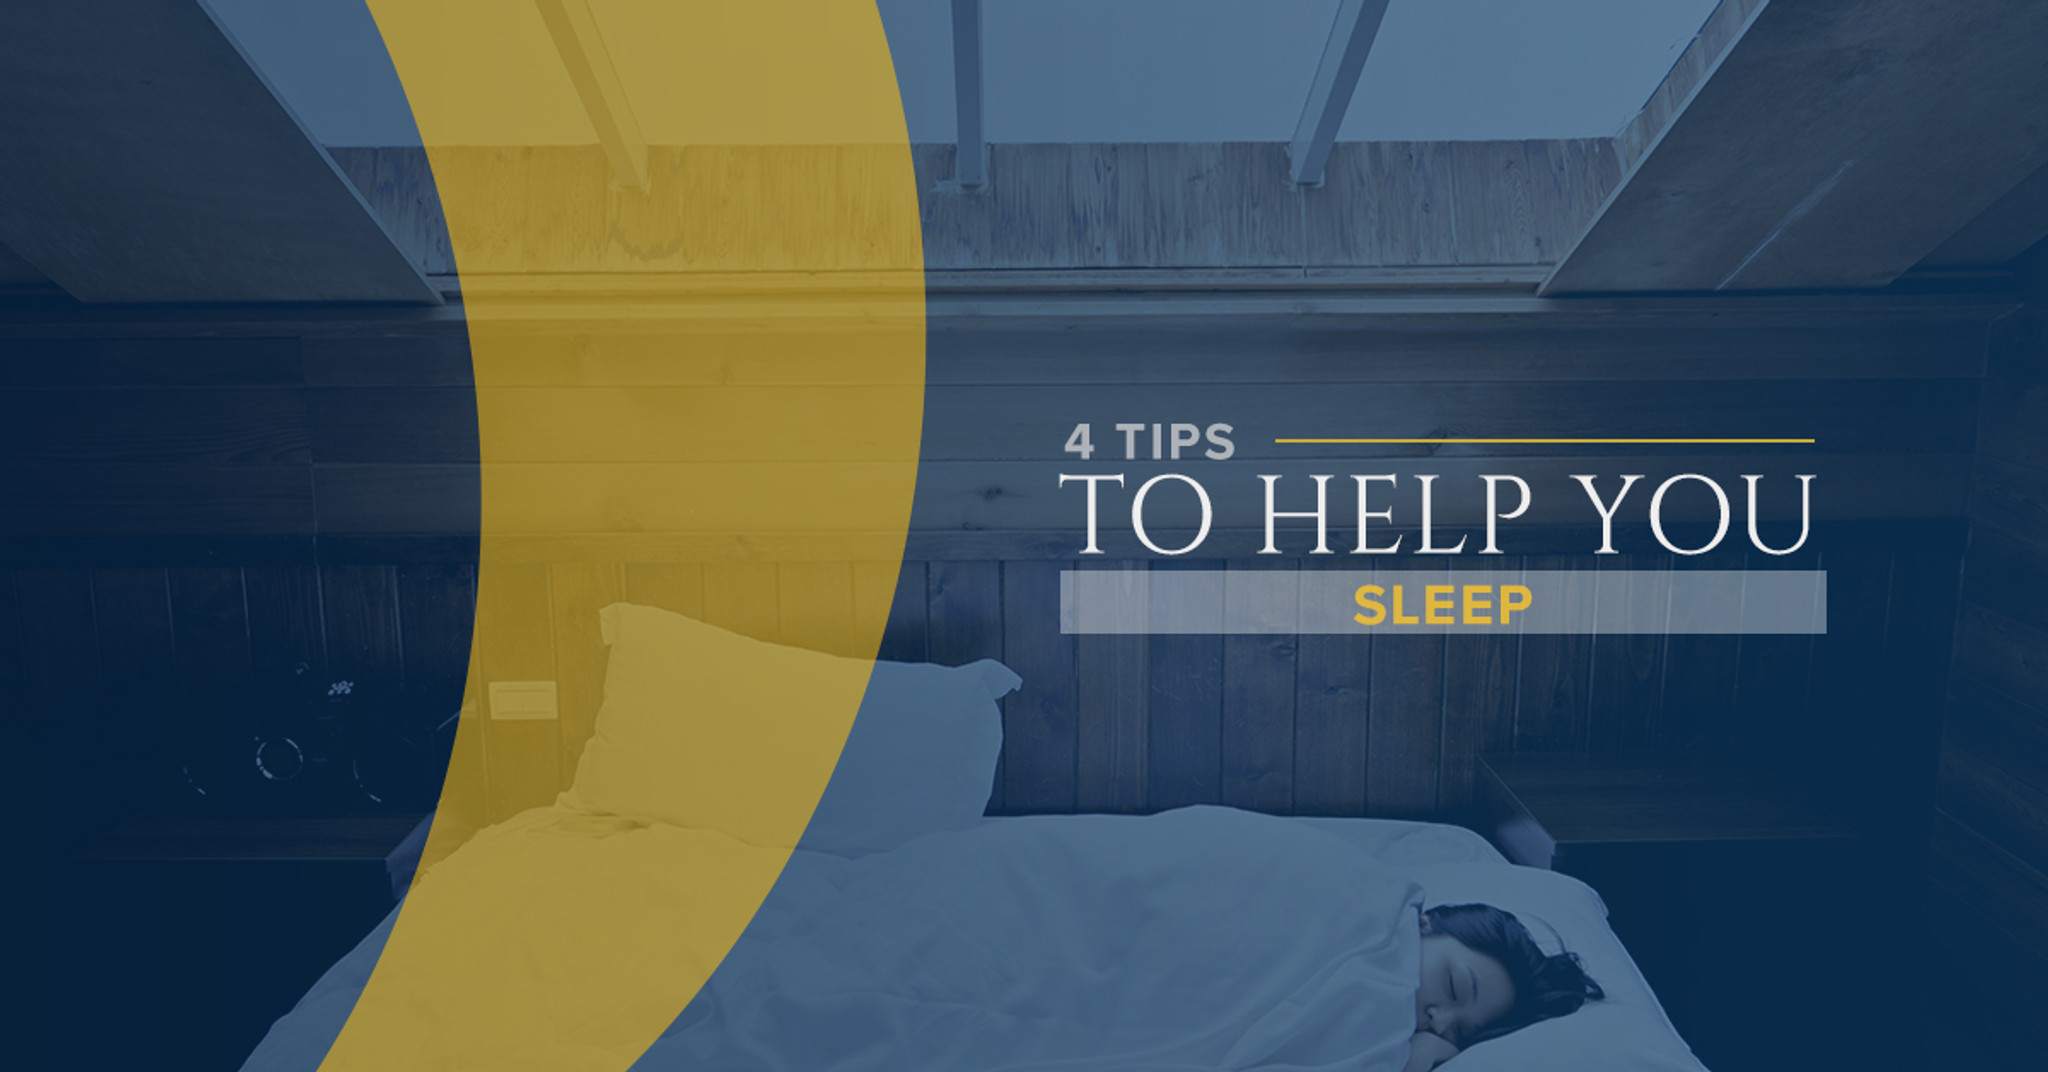 4 Tips to Help You Sleep